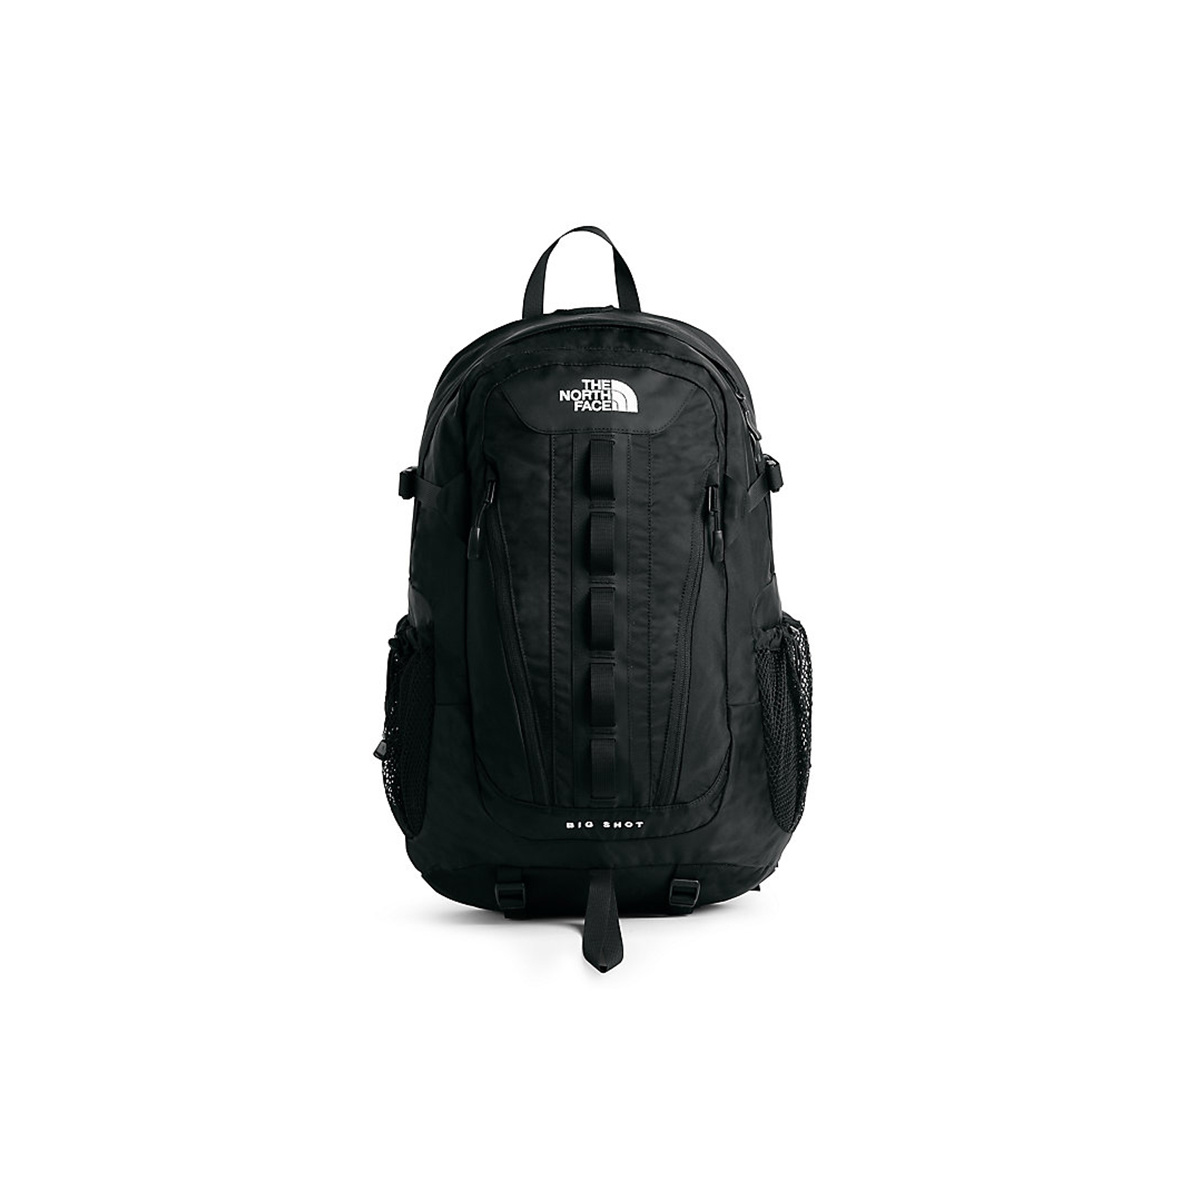 The North Face Big Shot Special Edition